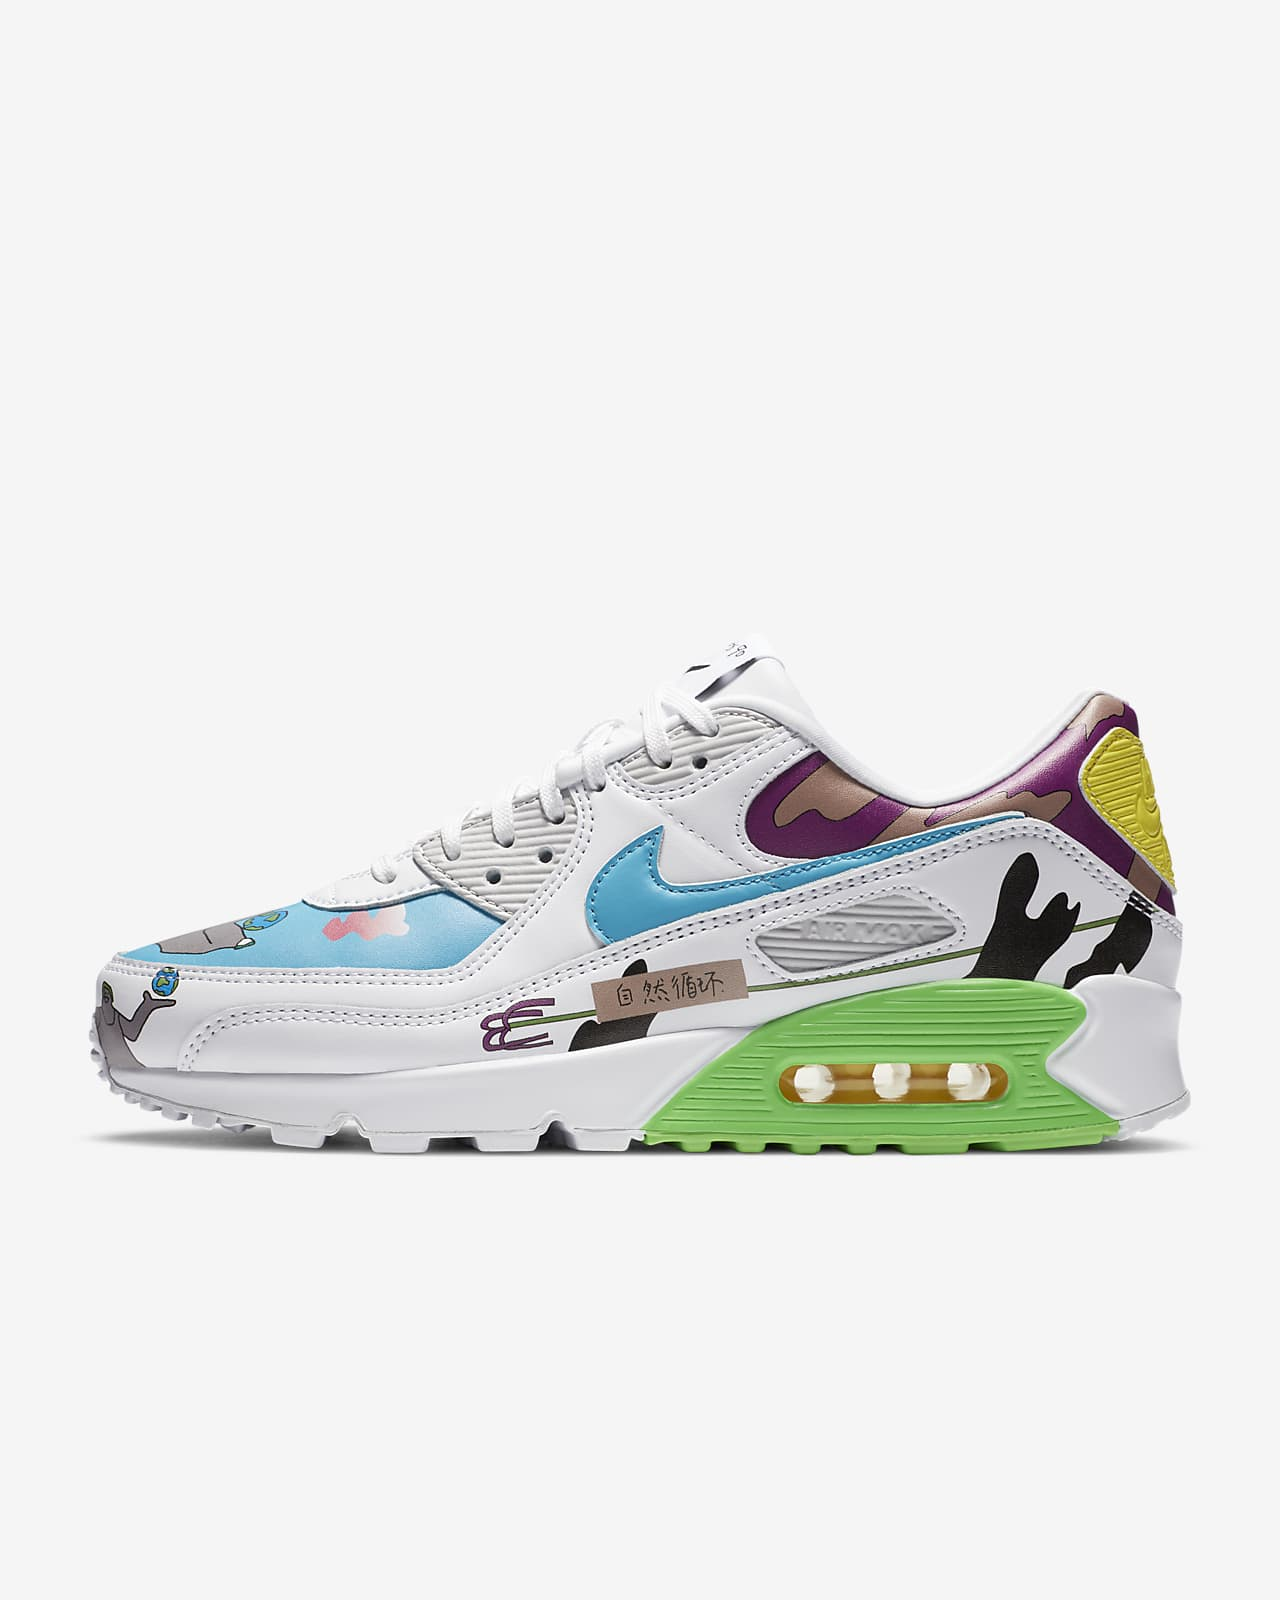 Nike Air Max 90 FlyLeather Men's Shoe